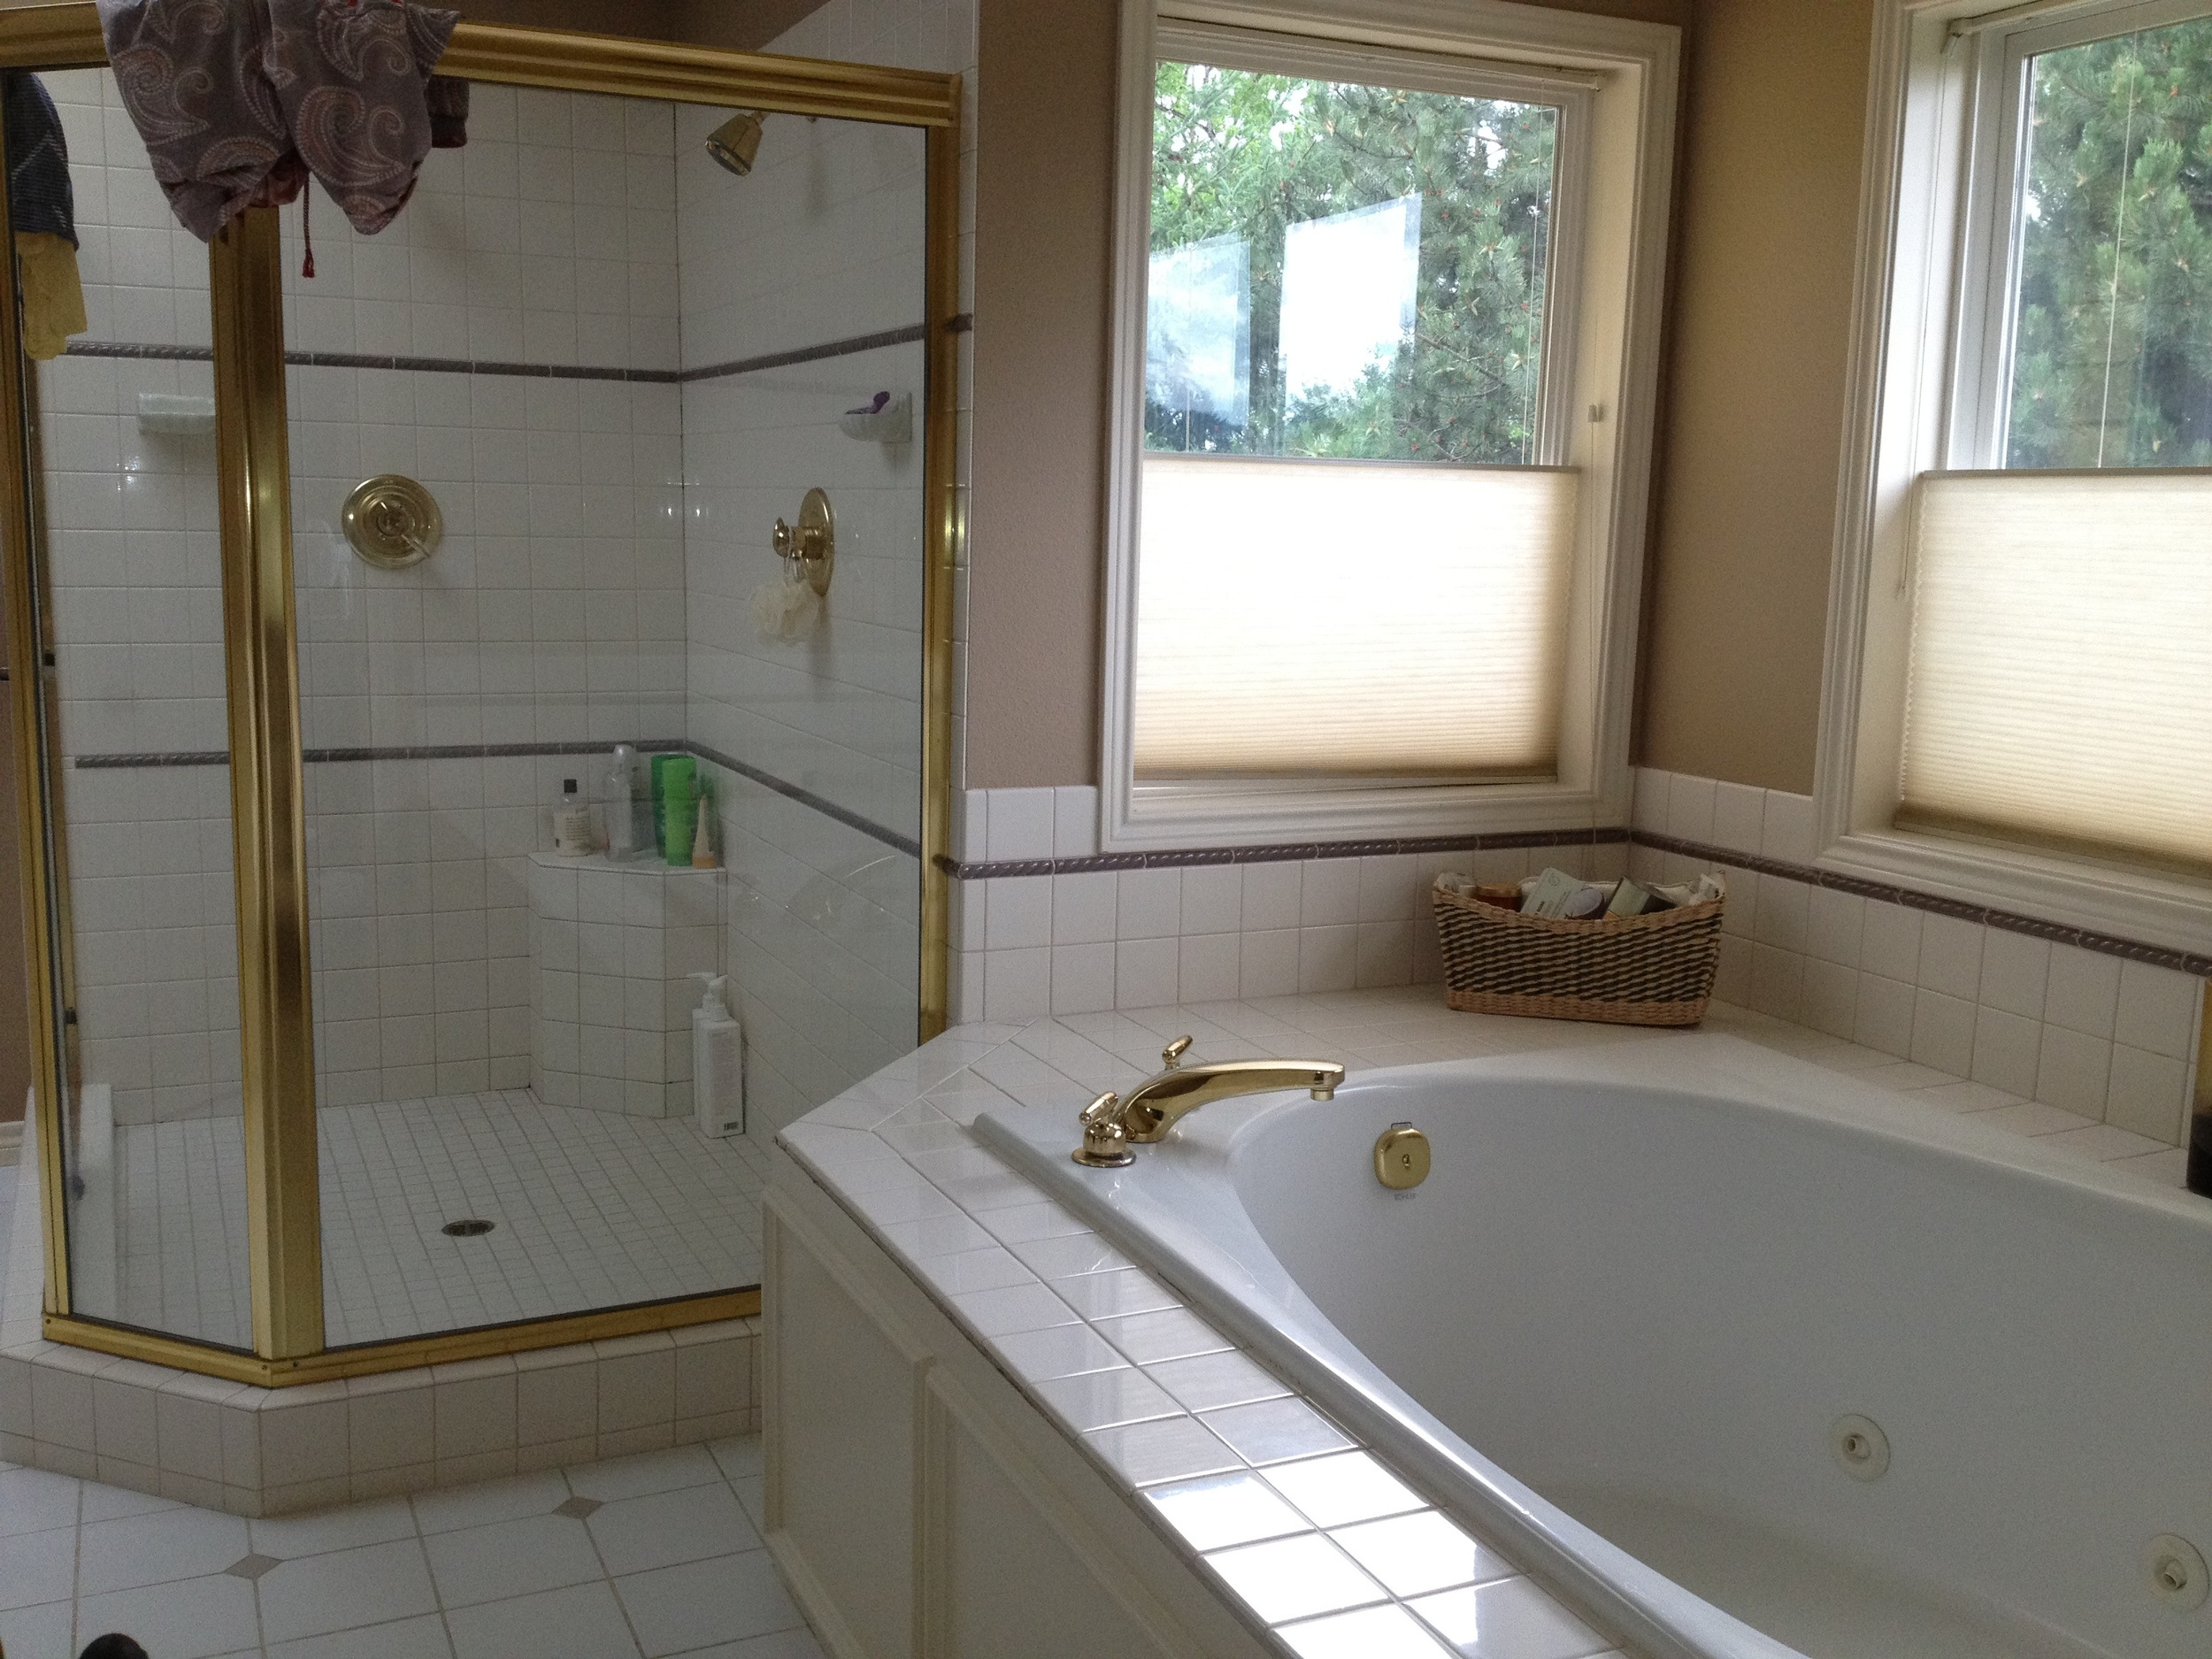 BEFORE: The built-in tub took up so much room